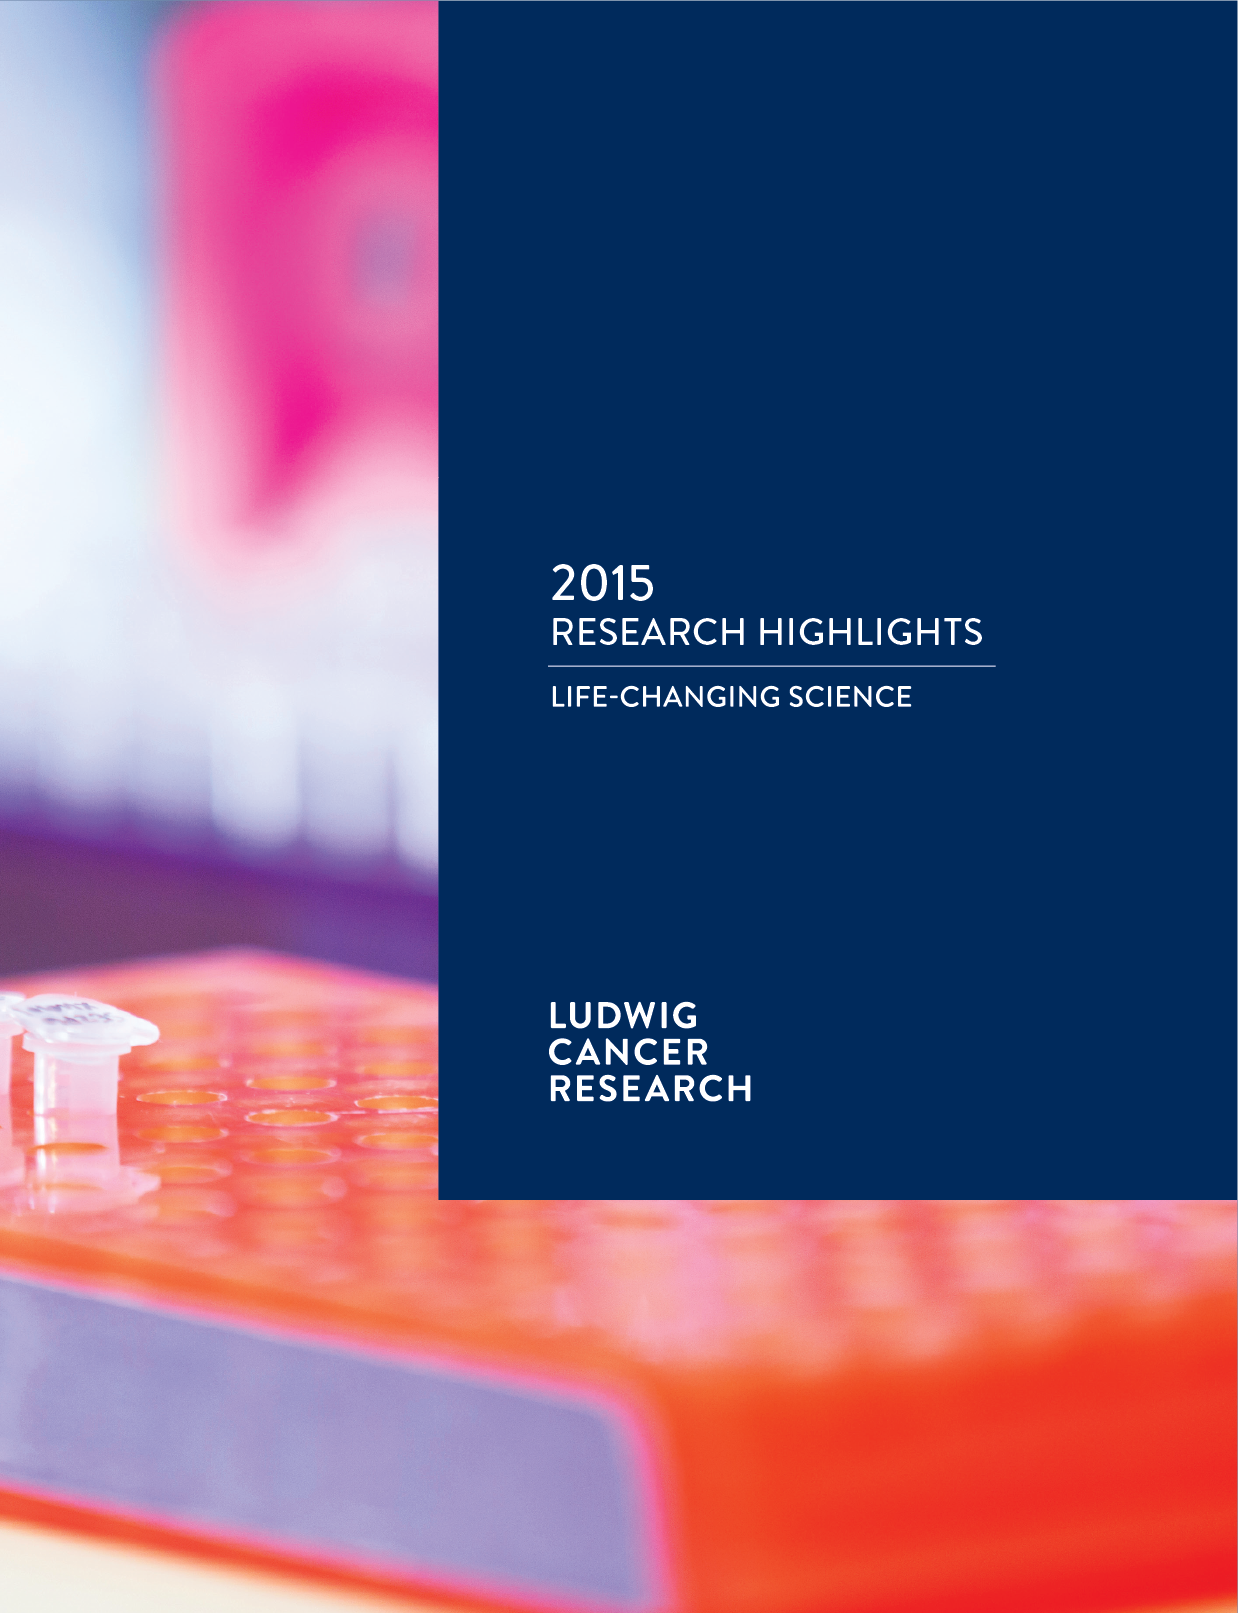 Ludwig Annual Research Highlights report cover